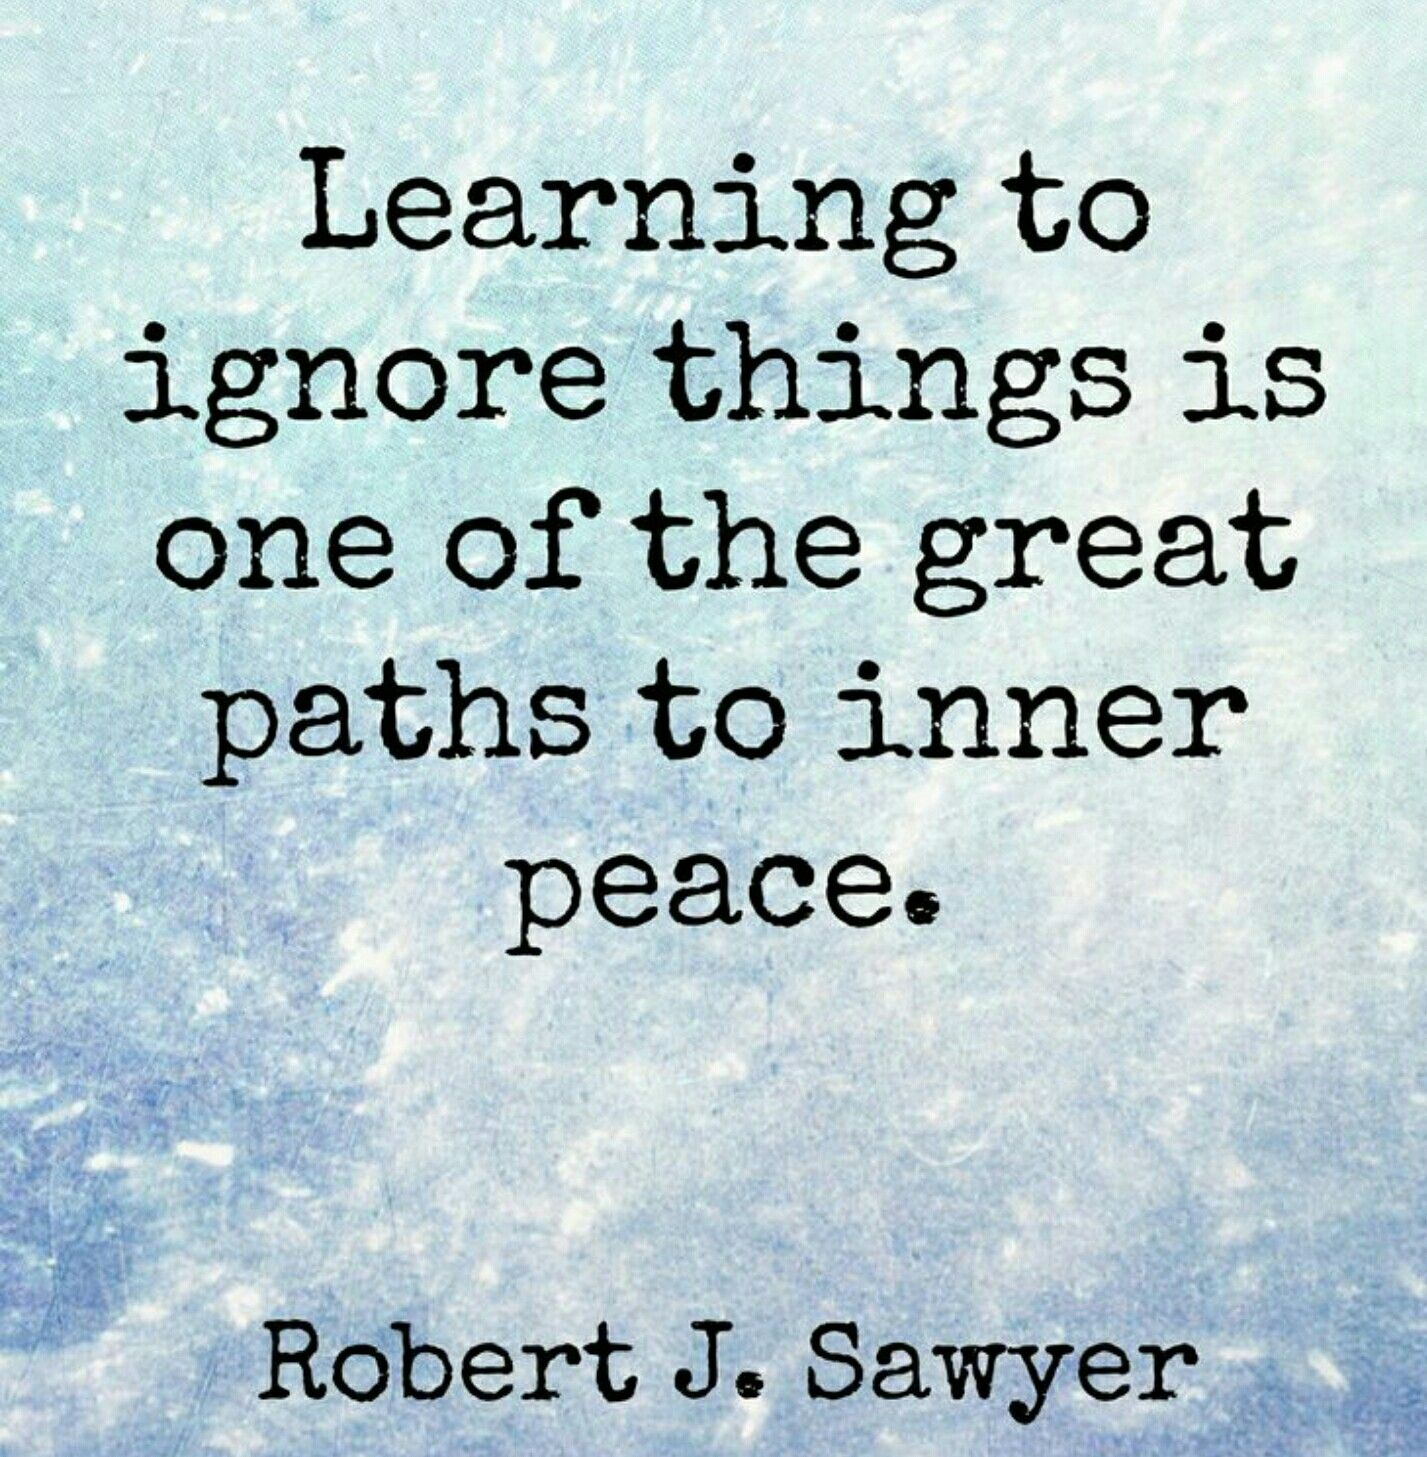 Inner Peace Image By Deb Harano On Remember Who You Are Social